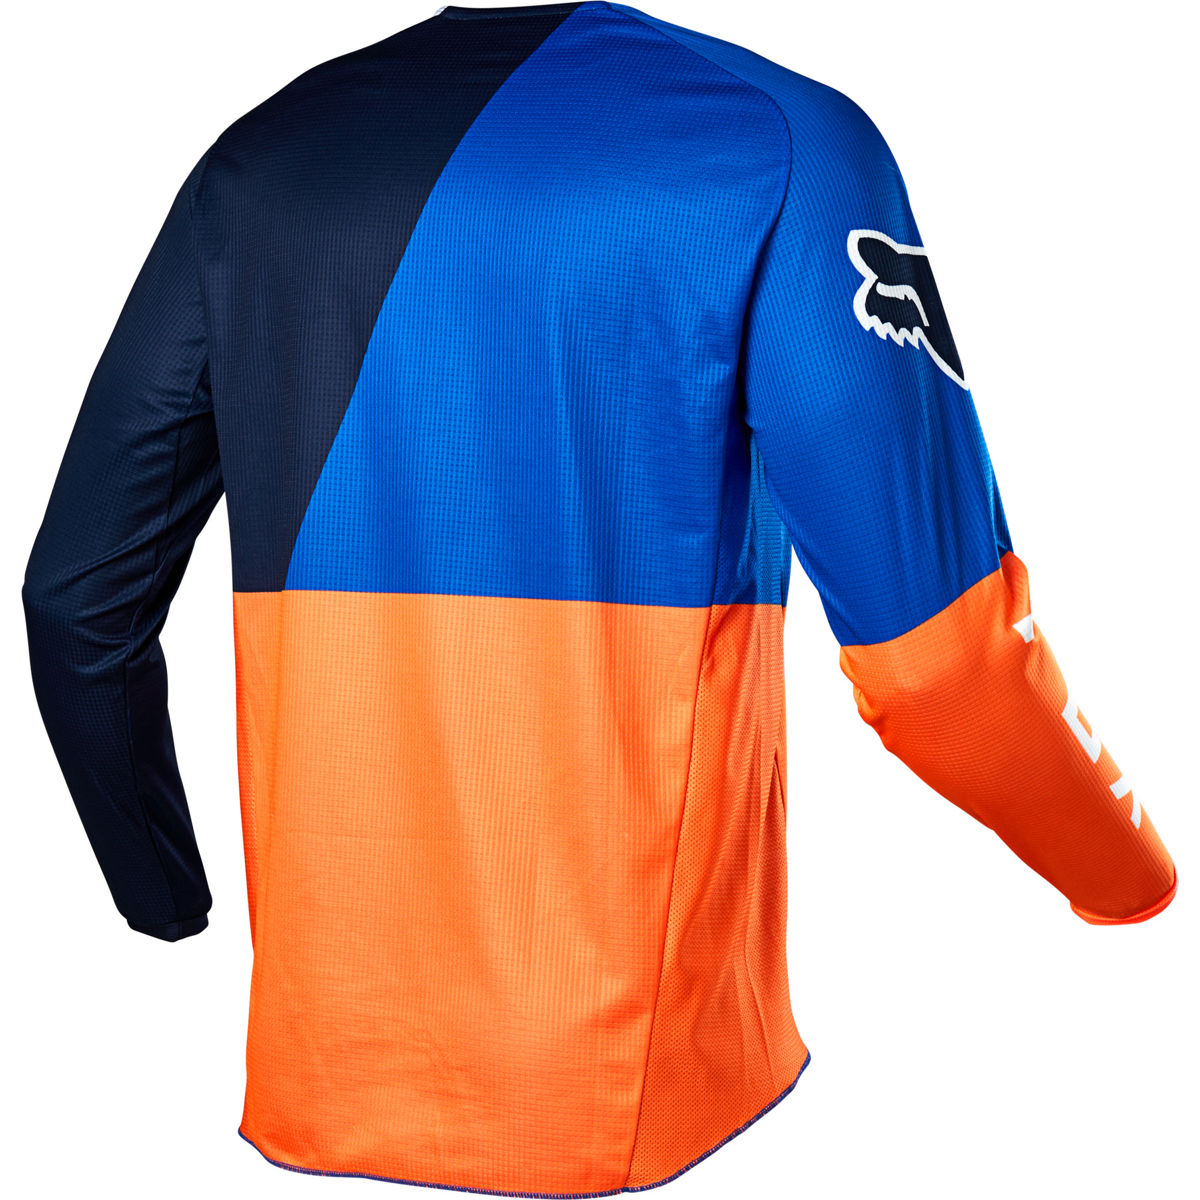 26526-592 2020 Fox Racing 180 Lovl Jersey Orange Blue Cross Trui Trikot Maillot